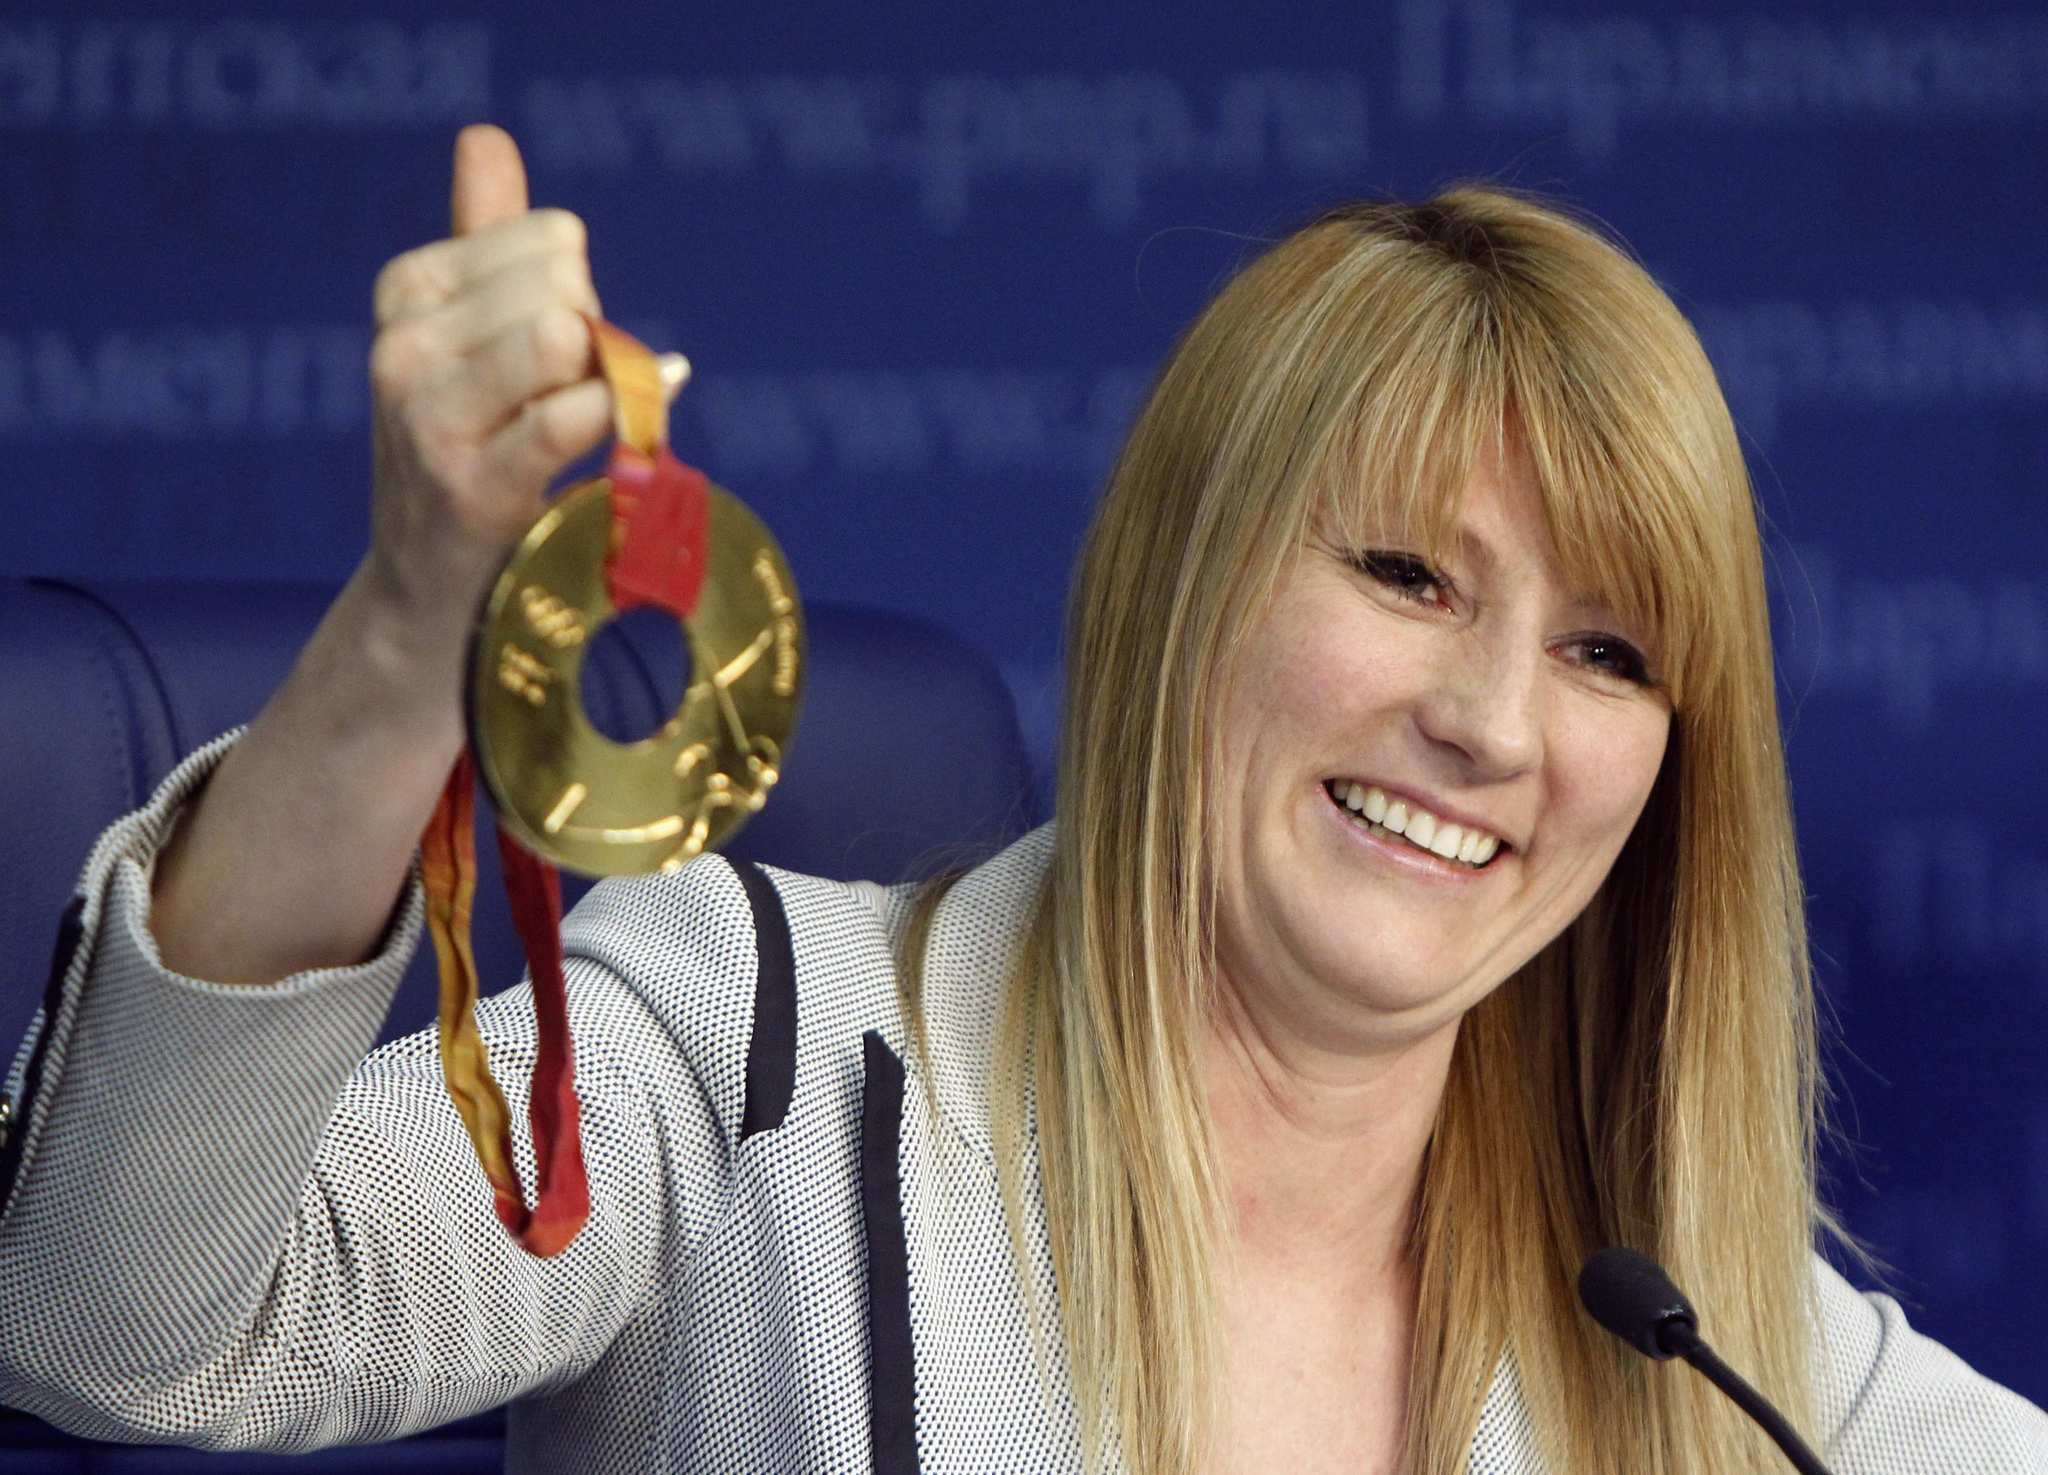 Svetlana Zhurova, a former Russian speed skater and 'mayor' of Sochi's Olympic Village, shows her Olympic medal during a news conference.